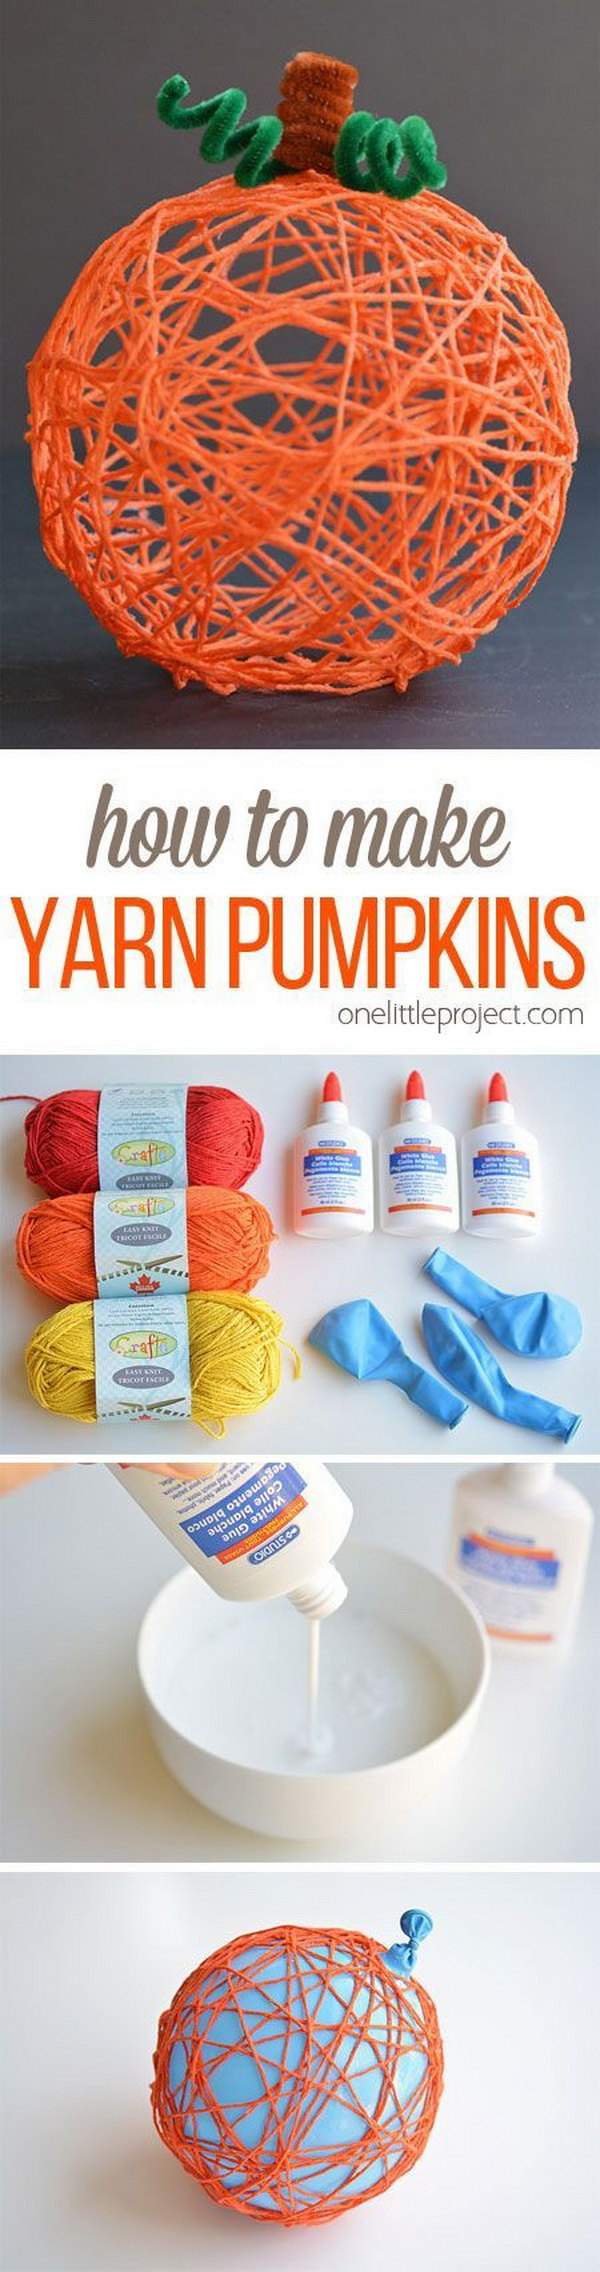 Yarn Pumpkins Using Balloons. Another fun fall craft idea! They make a fantastic centerpiece or mantle decoration for fall. Easy and fun to make within hours and get your little ones involved!